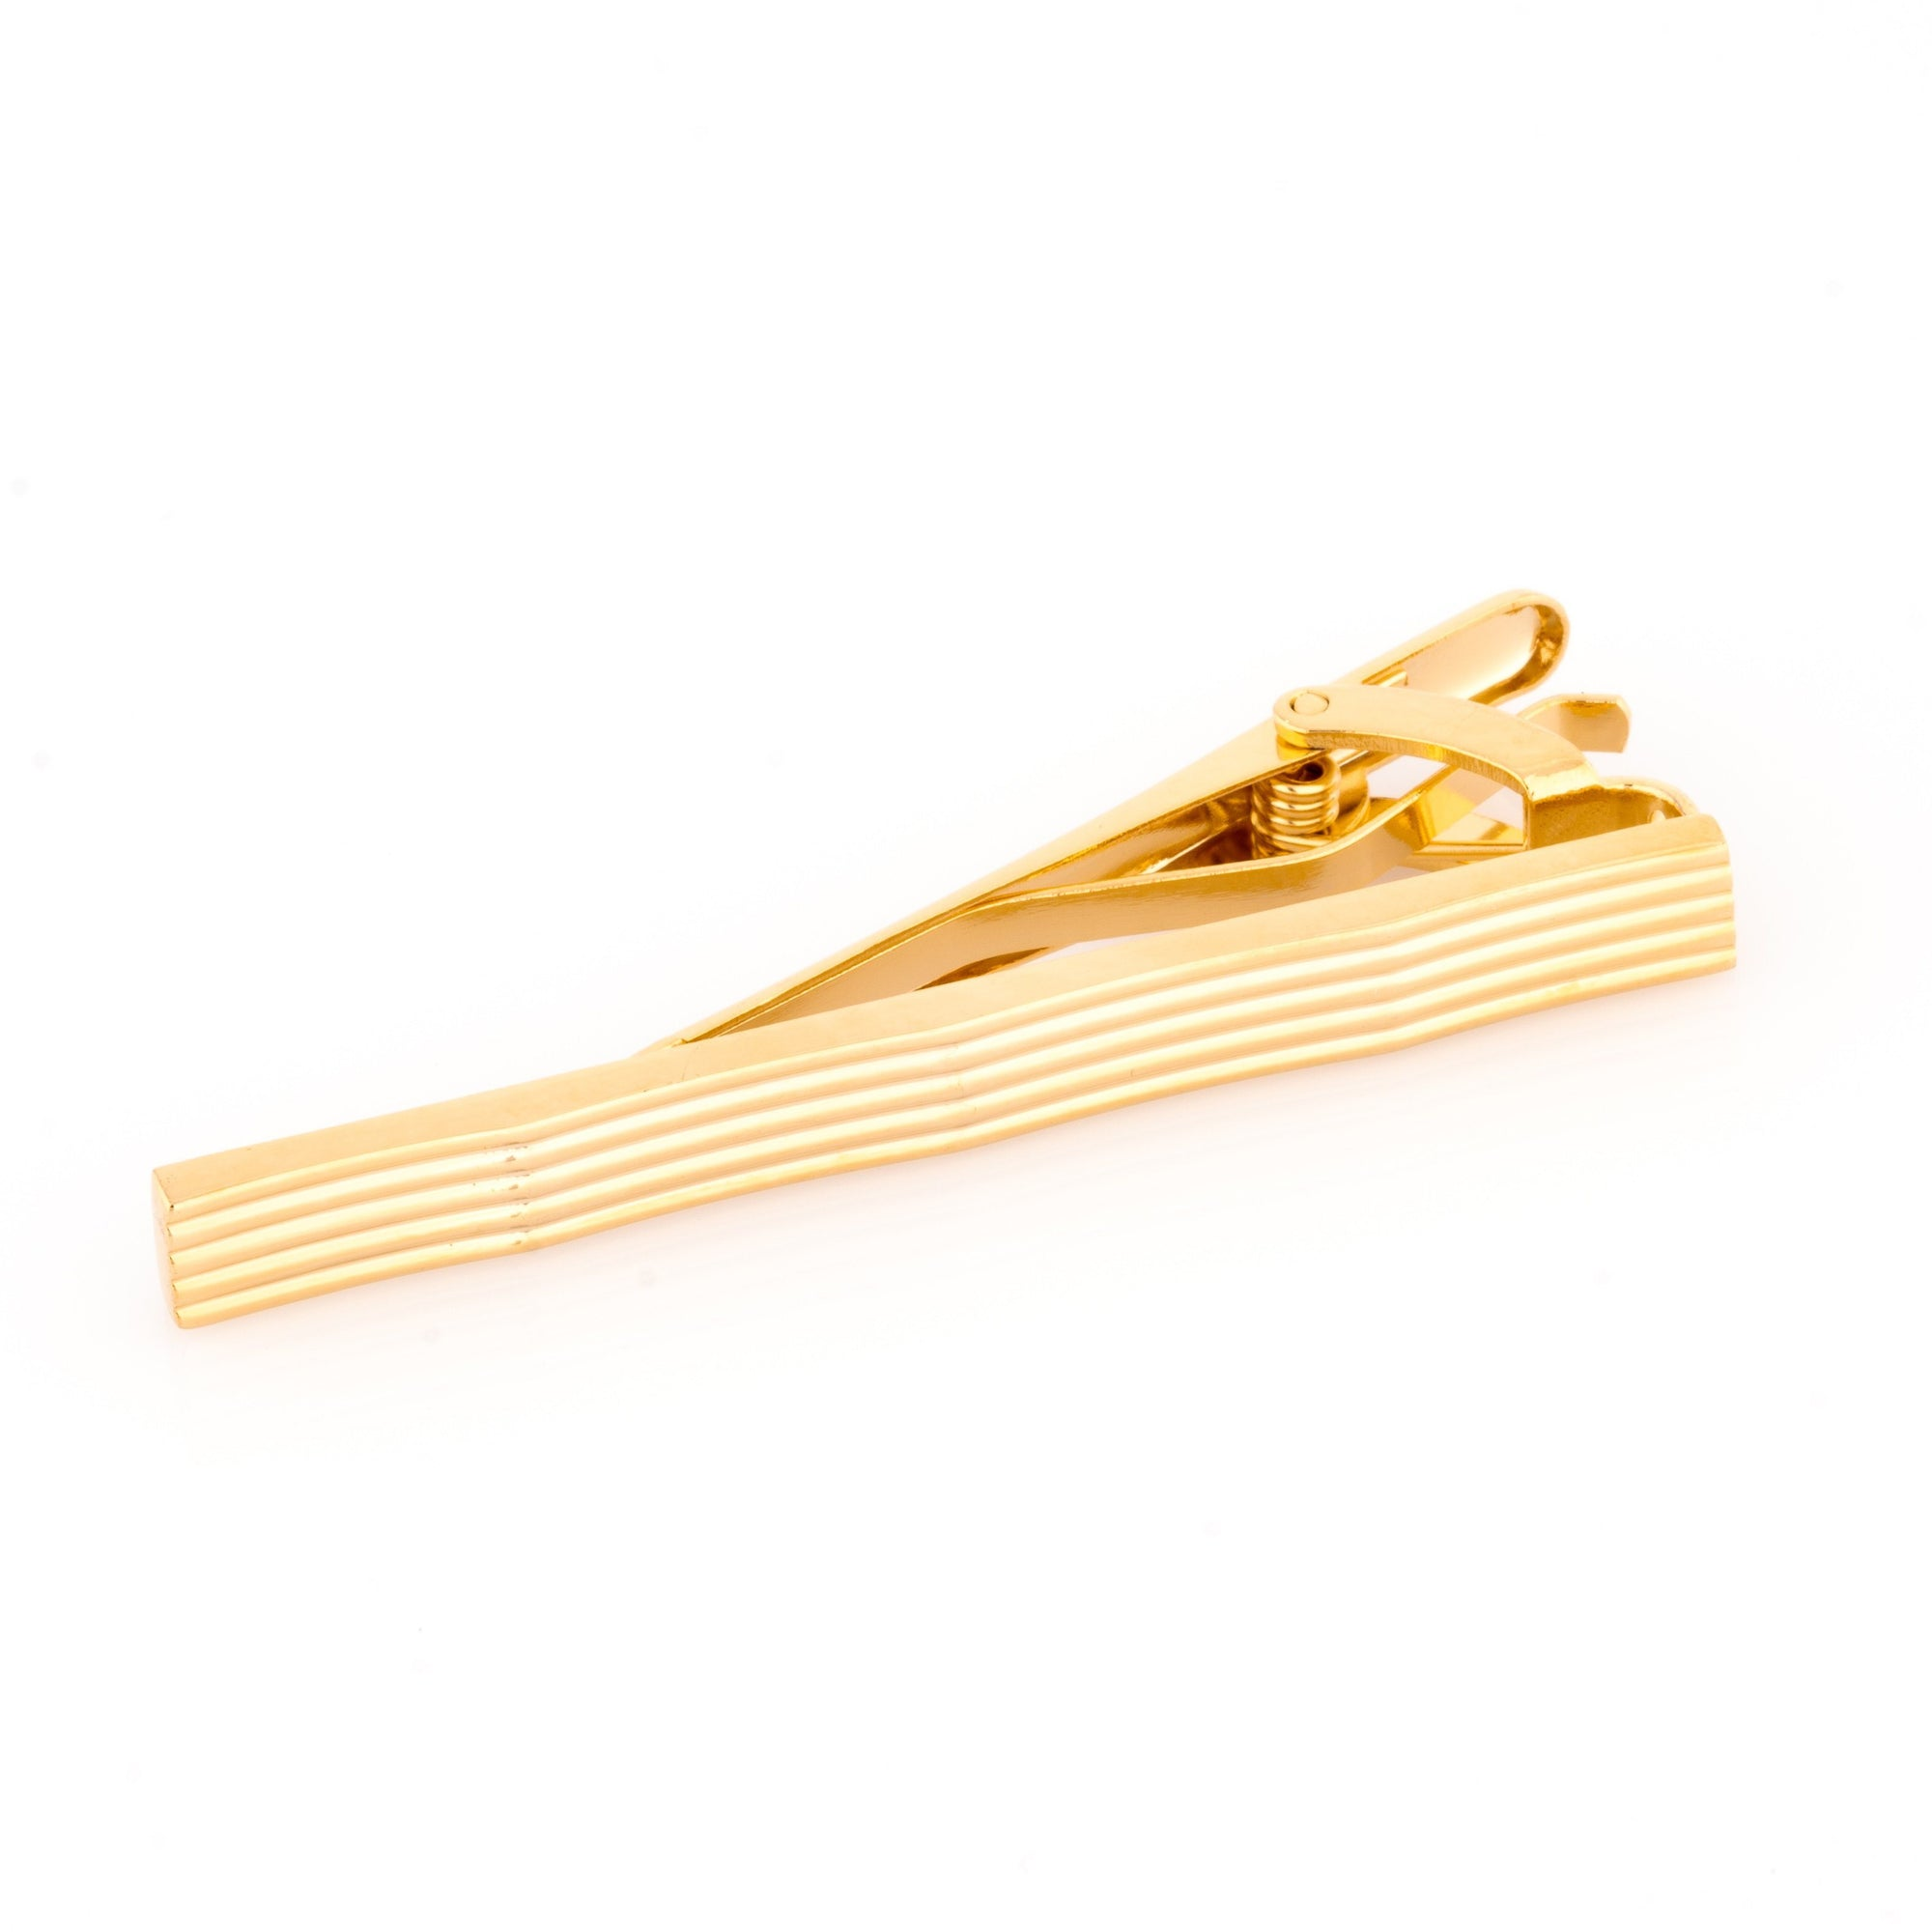 Gold Lines with Waves Tie Clip Tie Bars Clinks Australia Gold Lines with Waves Tie Clip